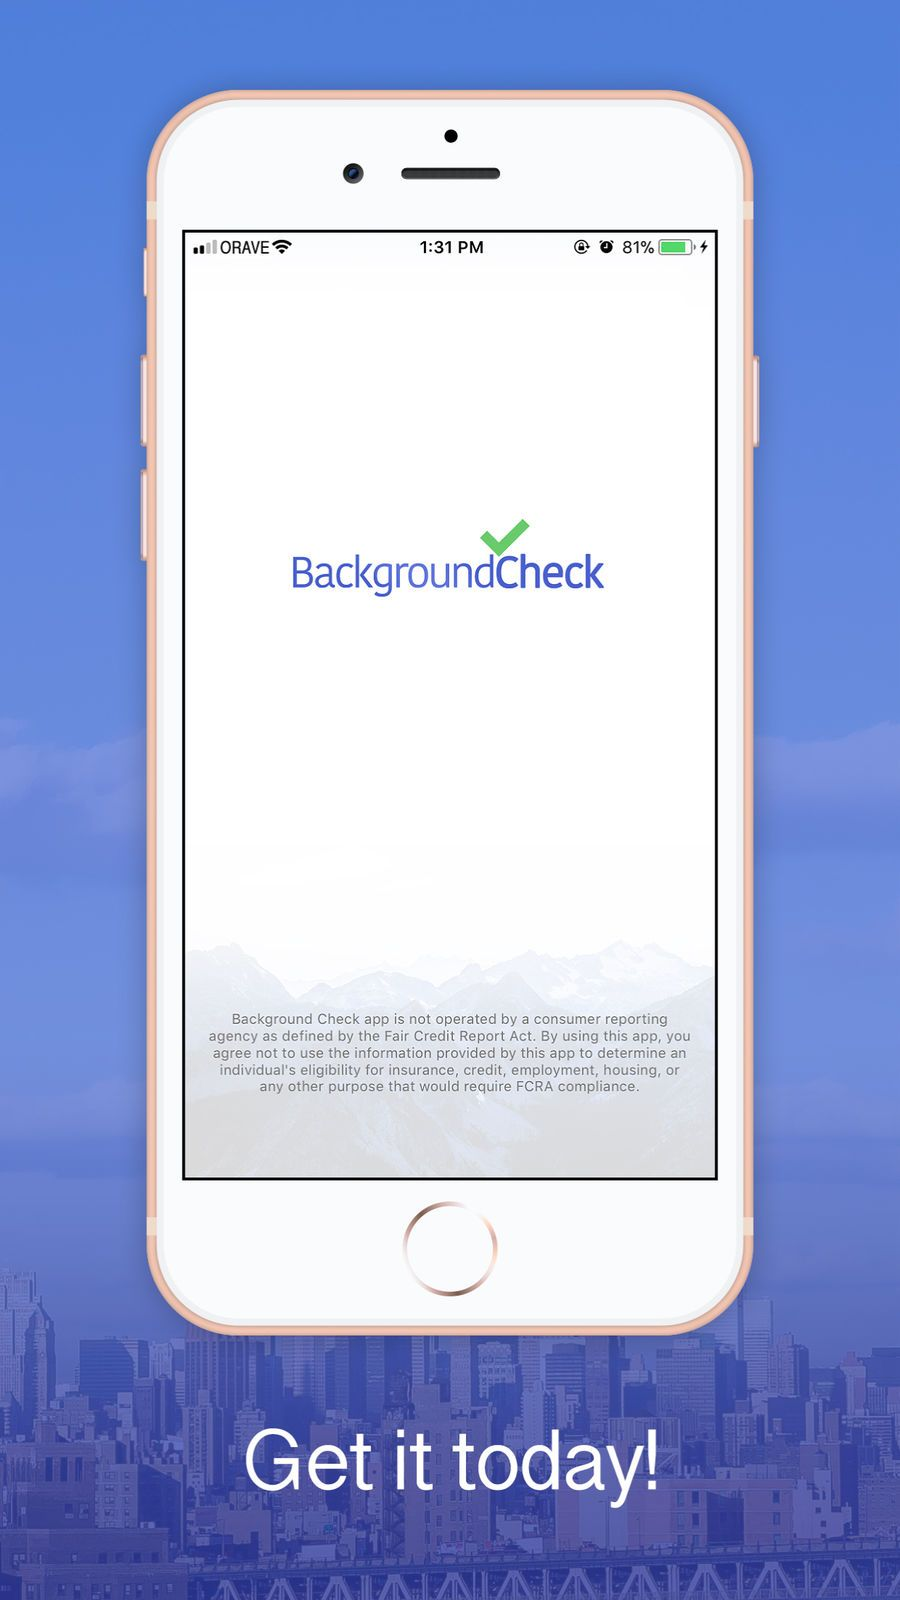 Background Check #Reference#Utilities#apps#ios ...